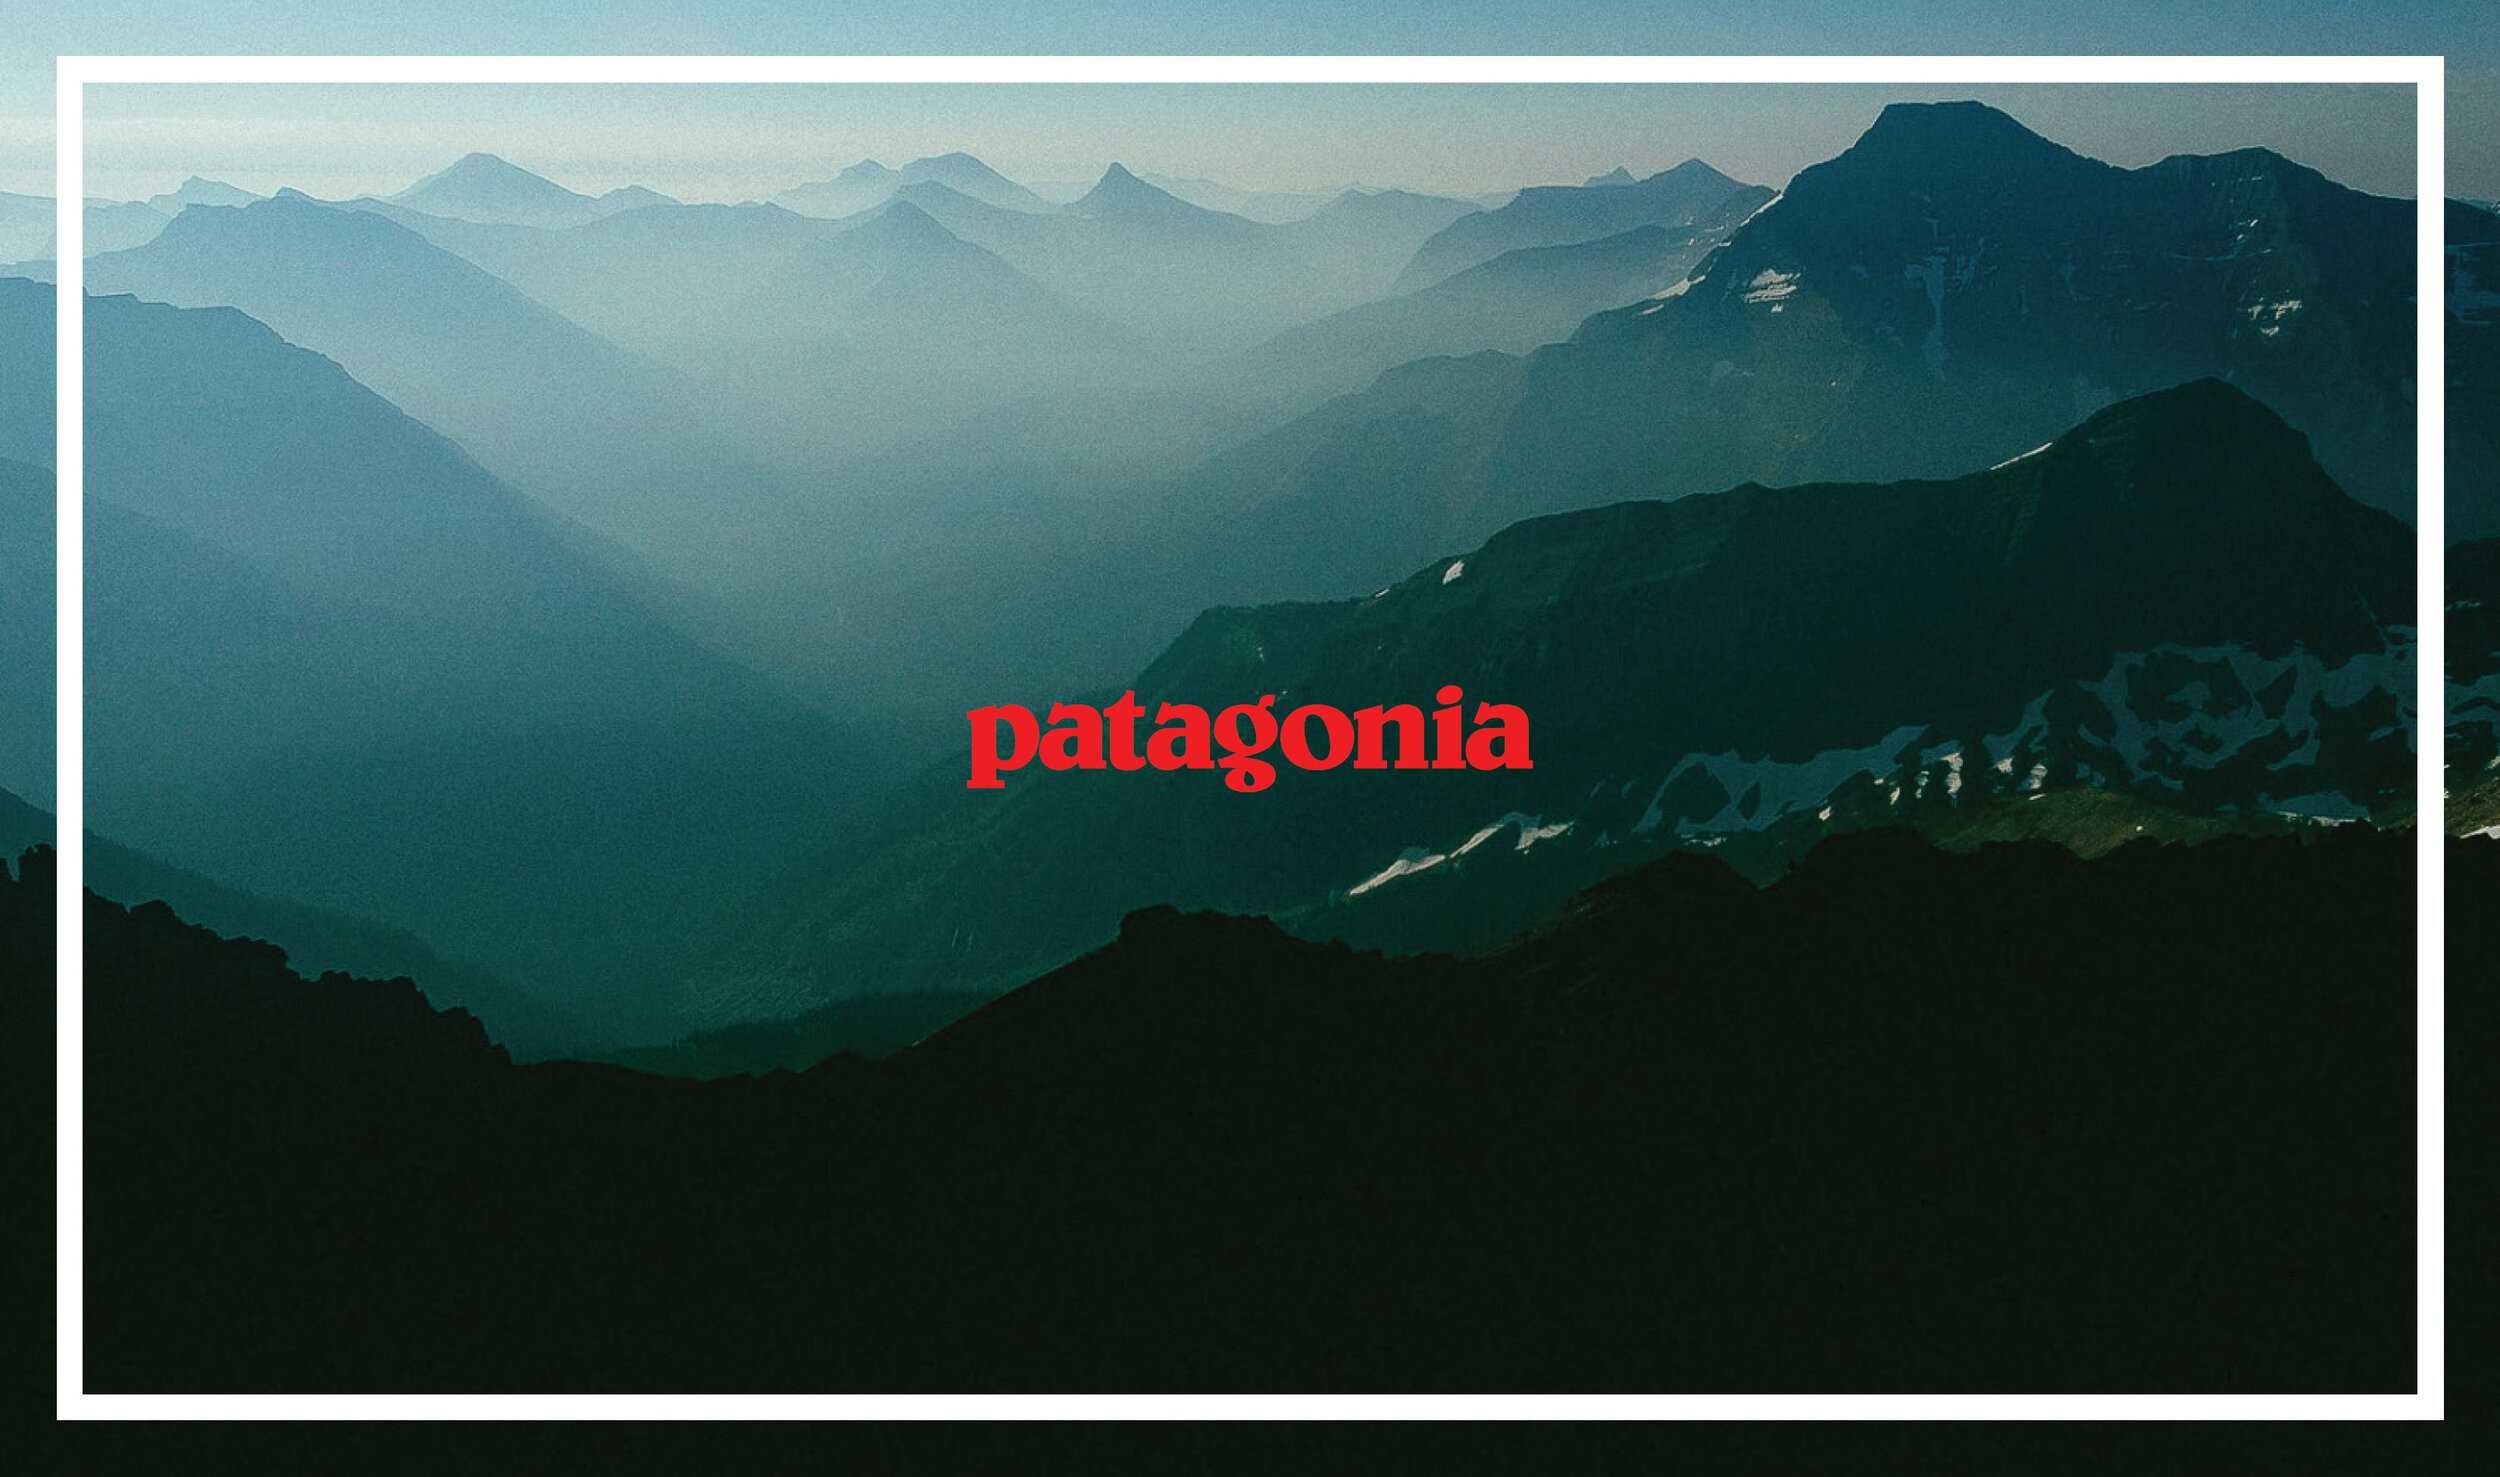 Patagonia_DirectorsTreatment_Page_25.jpg